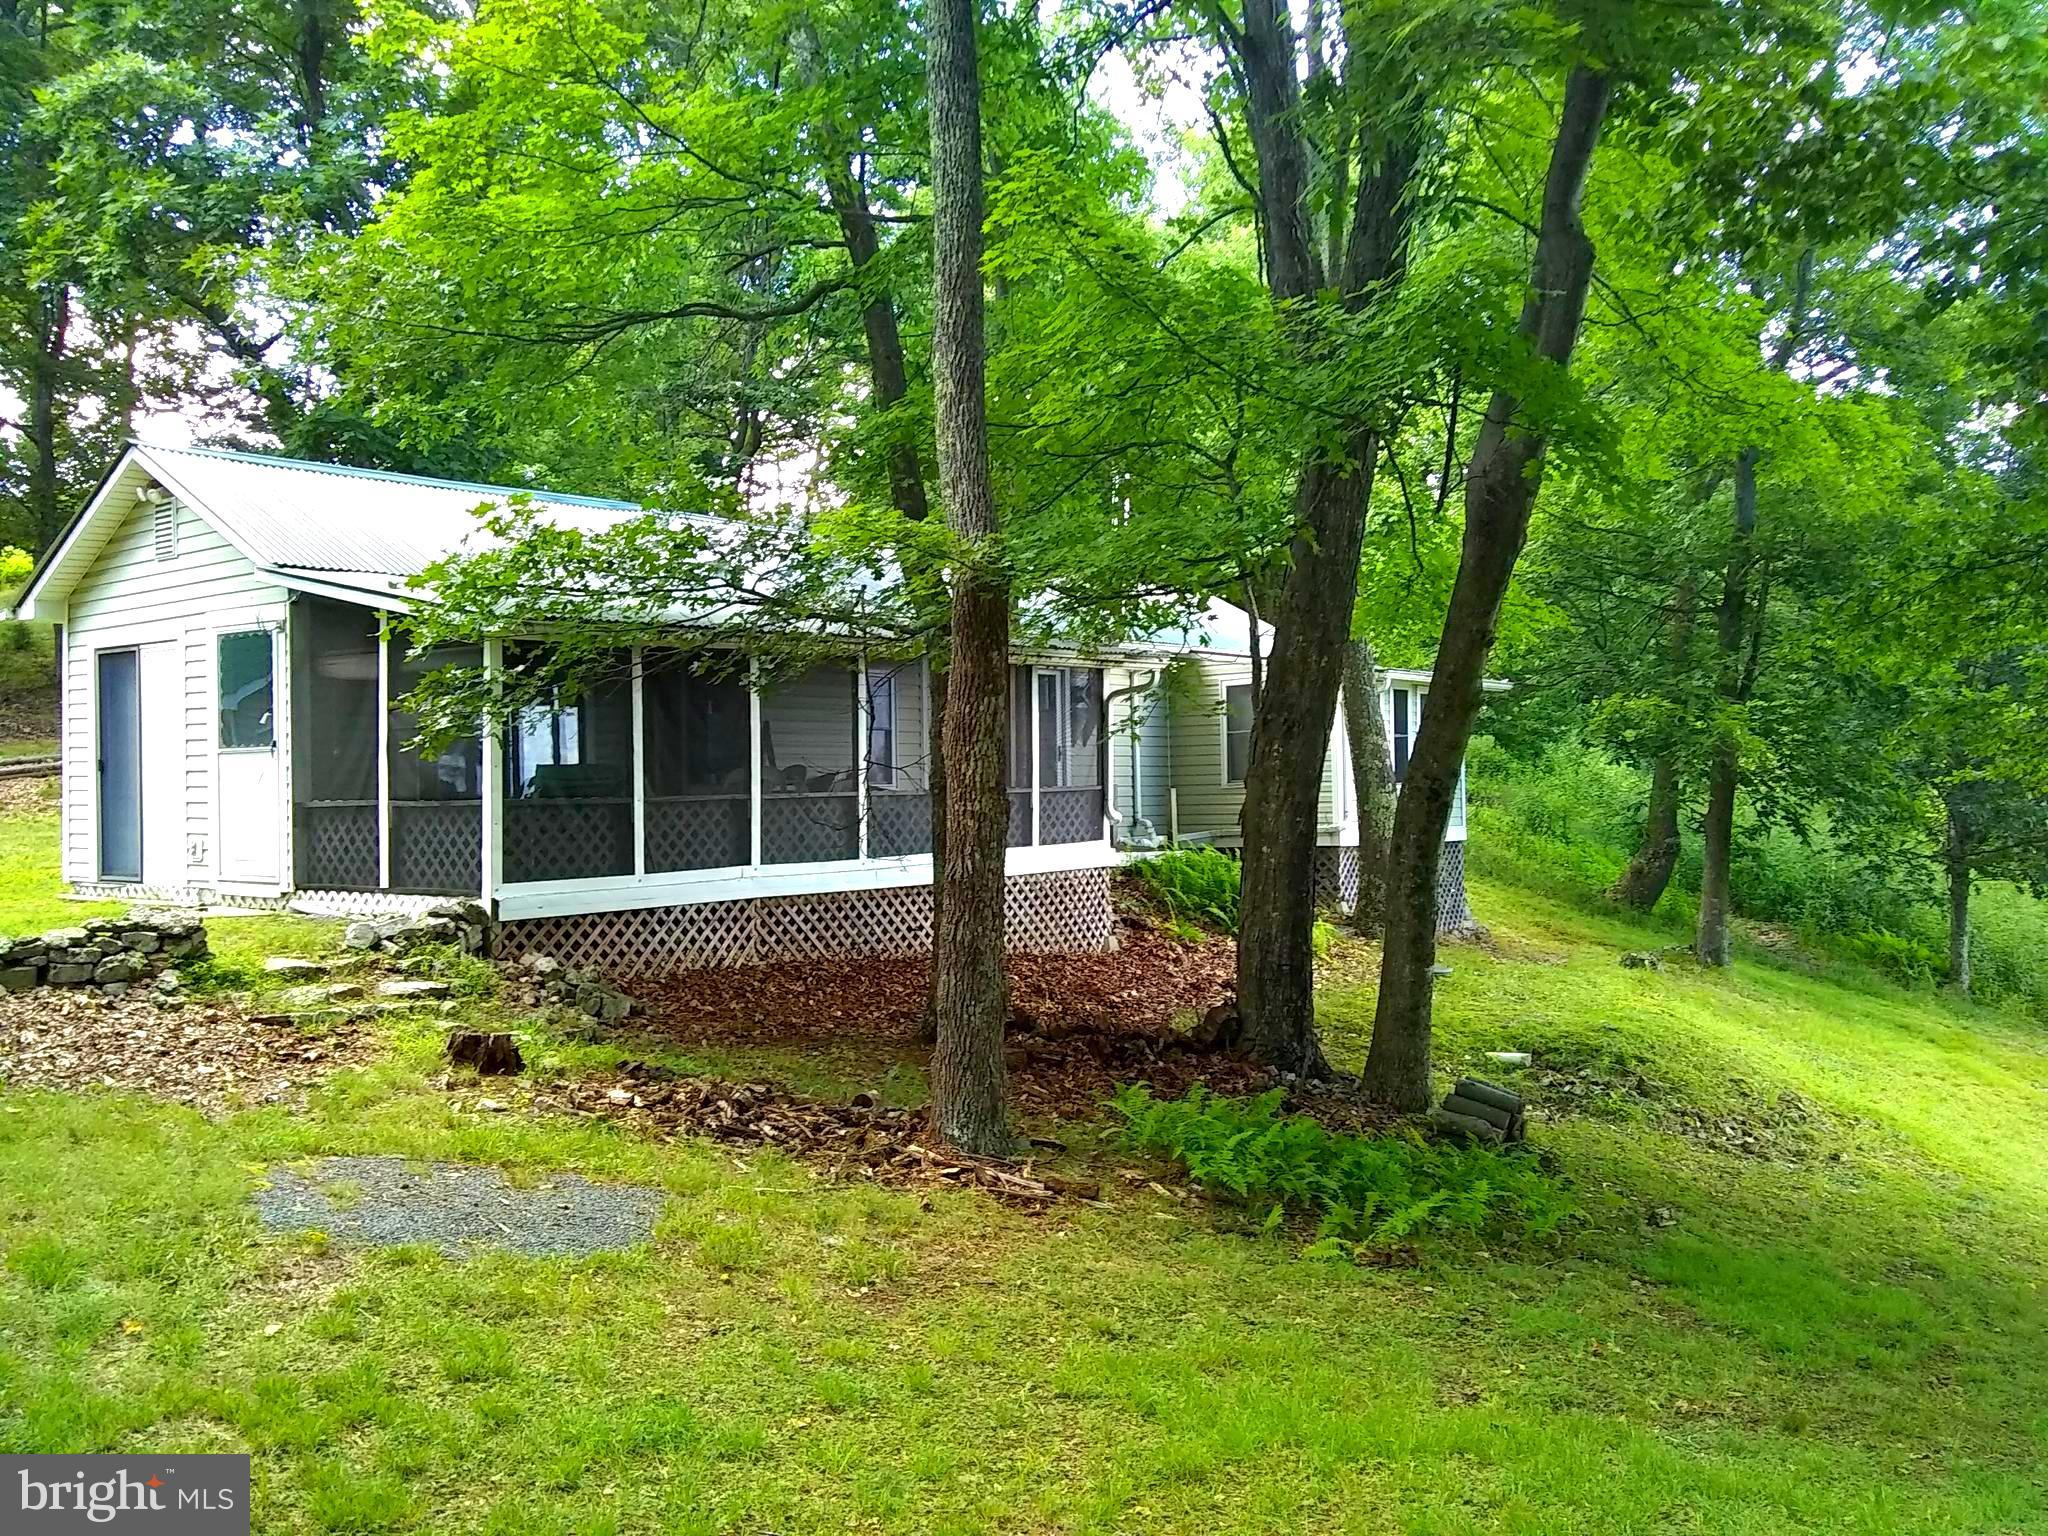 205 COOL LANE, FRANKLIN, WV 26807